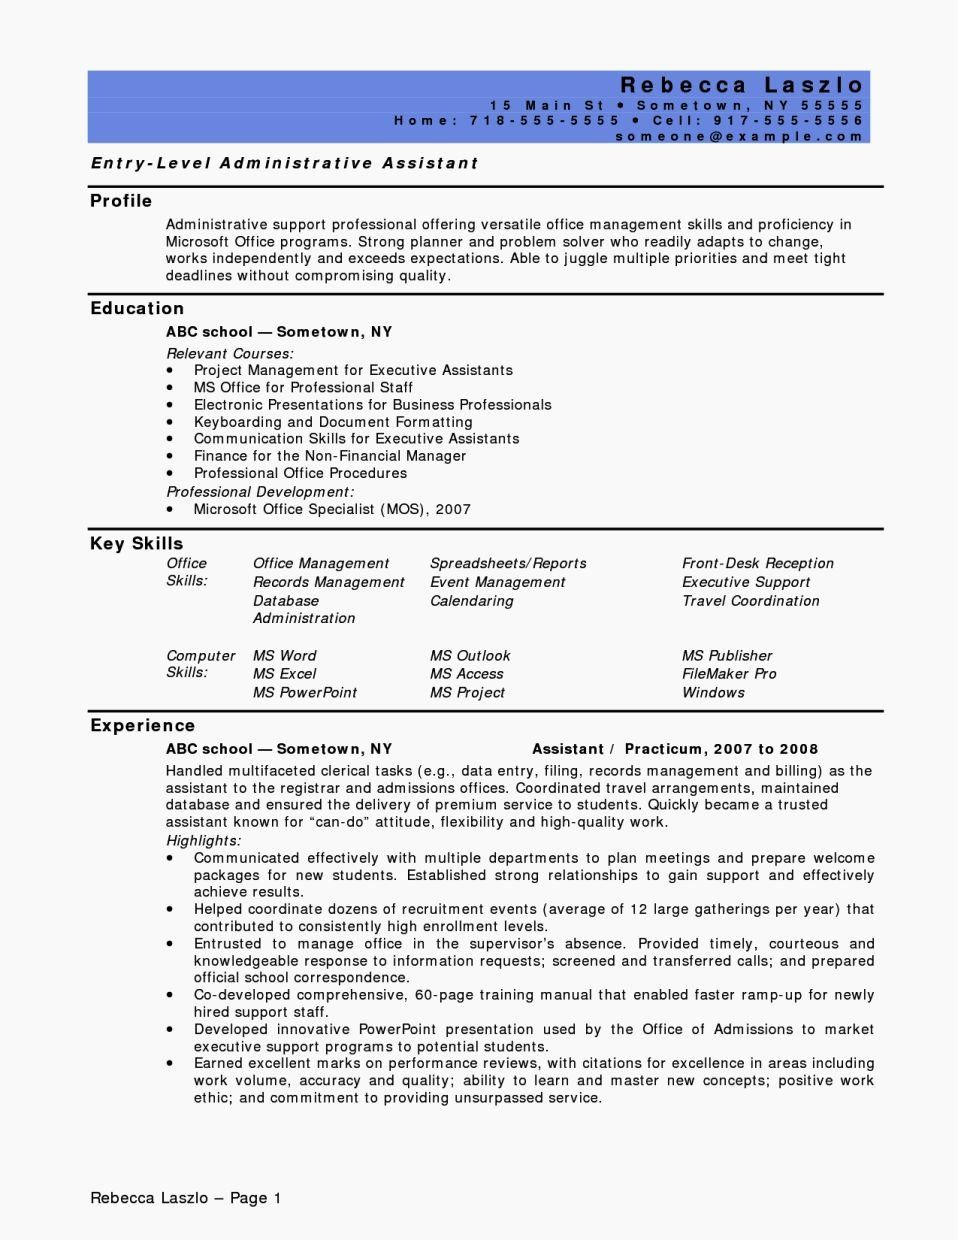 40 Entry Level Marketing Resume in 2020 Administrative